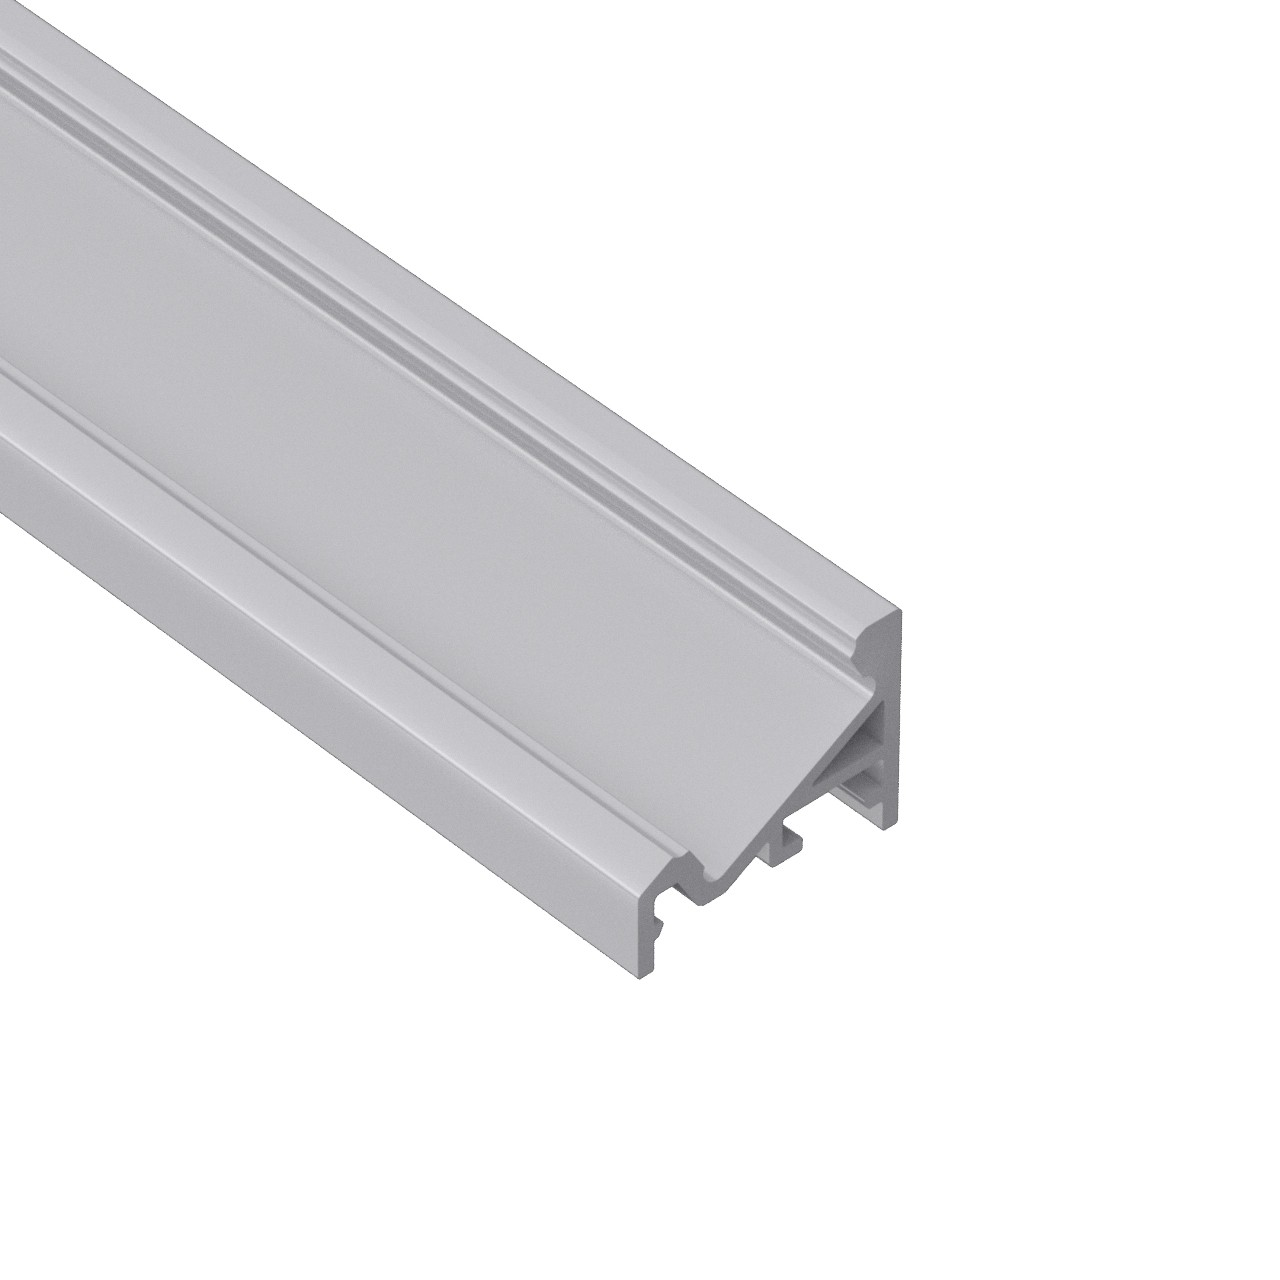 AV2 Corner 30°/60°aluminum surface mounting profile 20x16mm